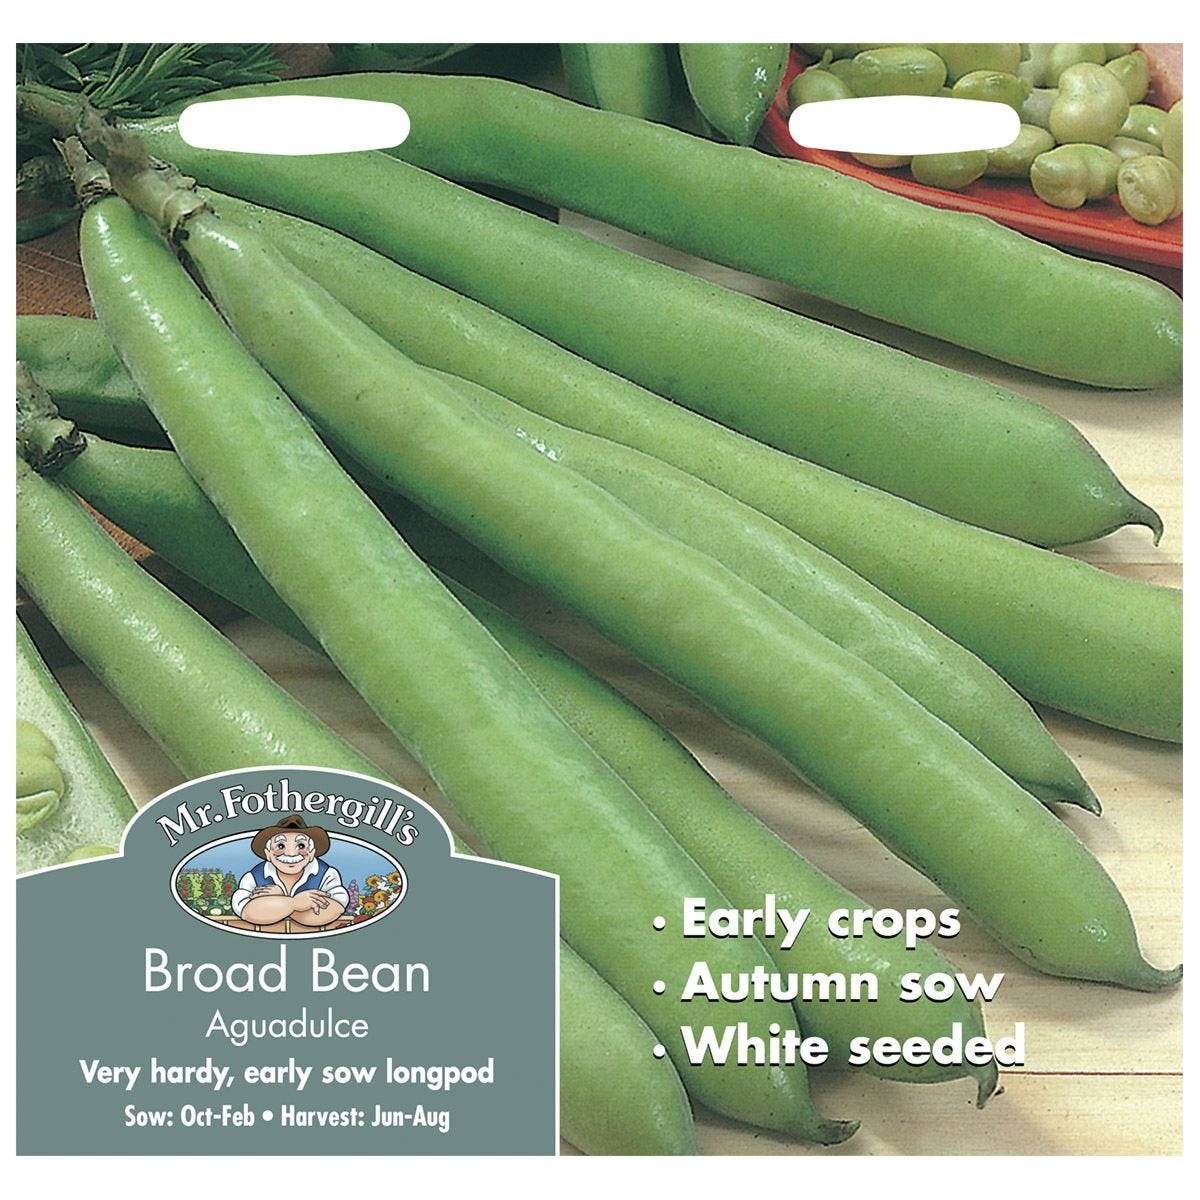 Mr Fothergill's Broad Bean Aguadulce Seeds